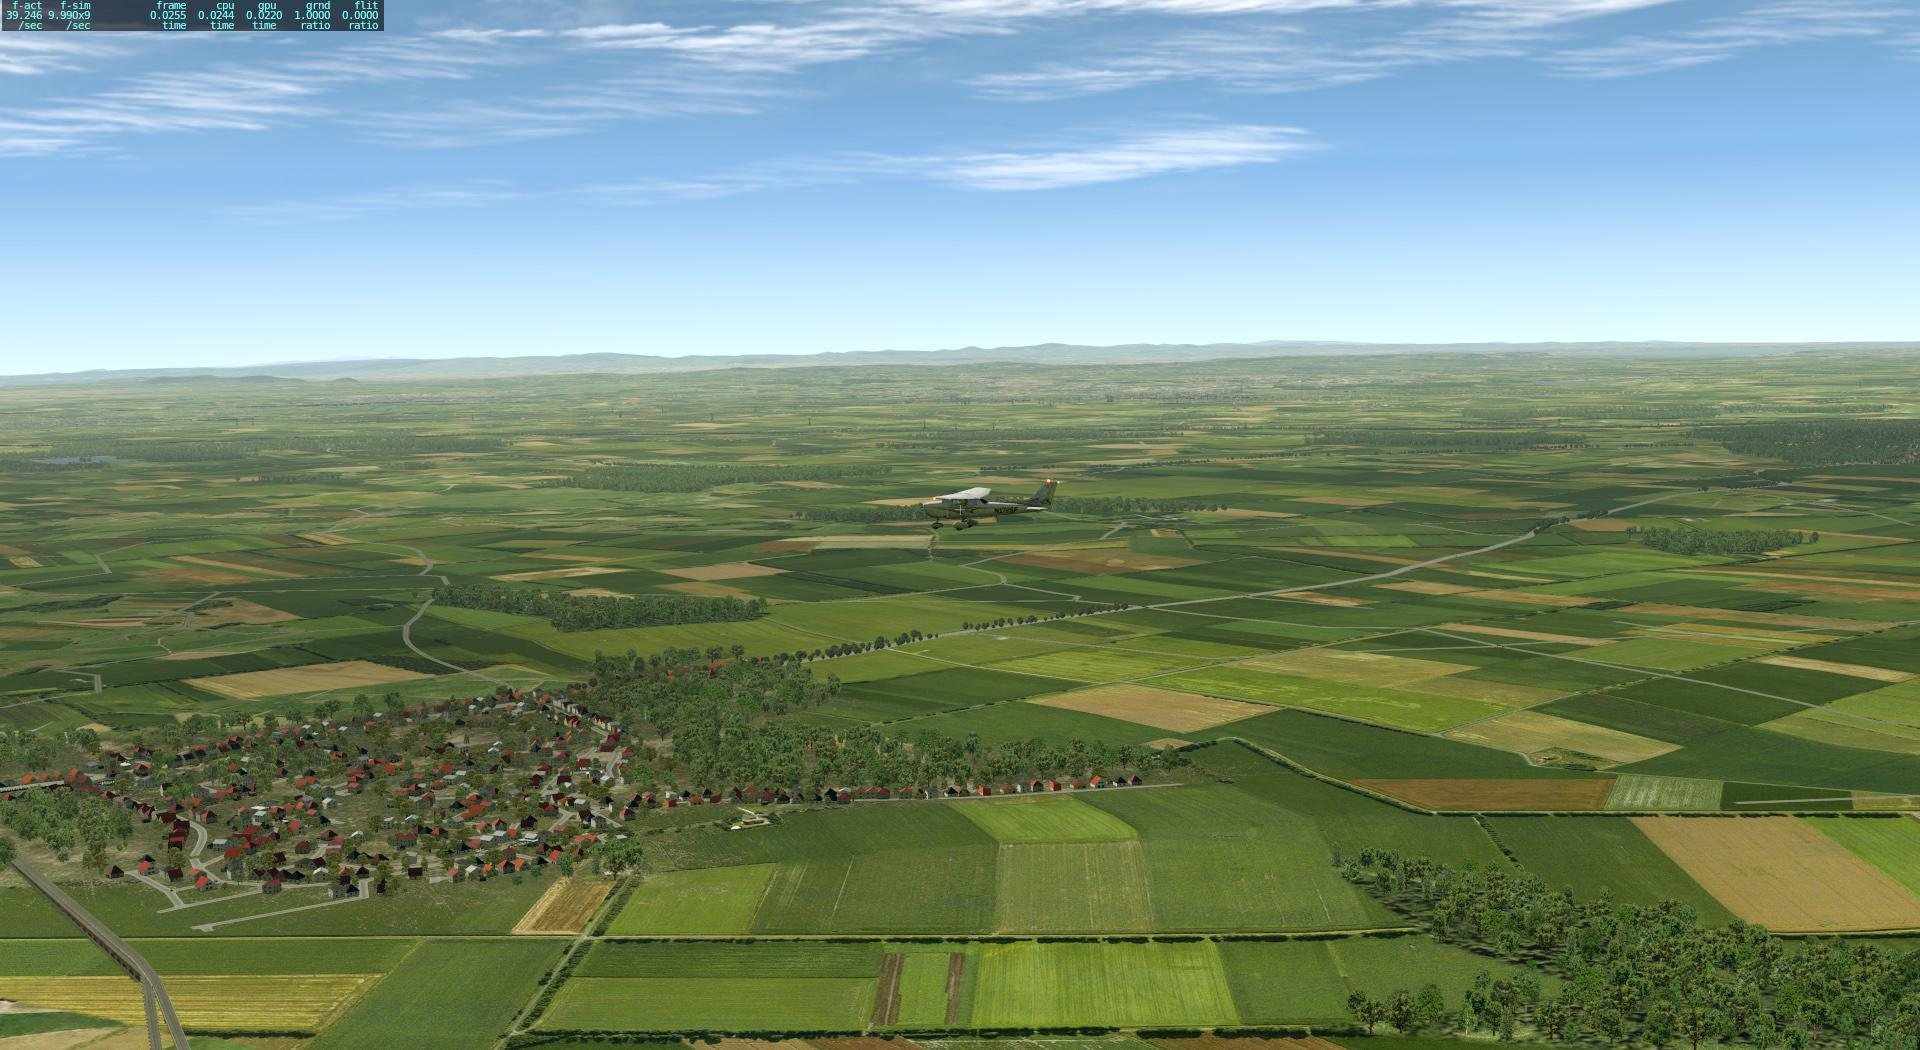 Orbx Global for XP announced - The X-Plane General